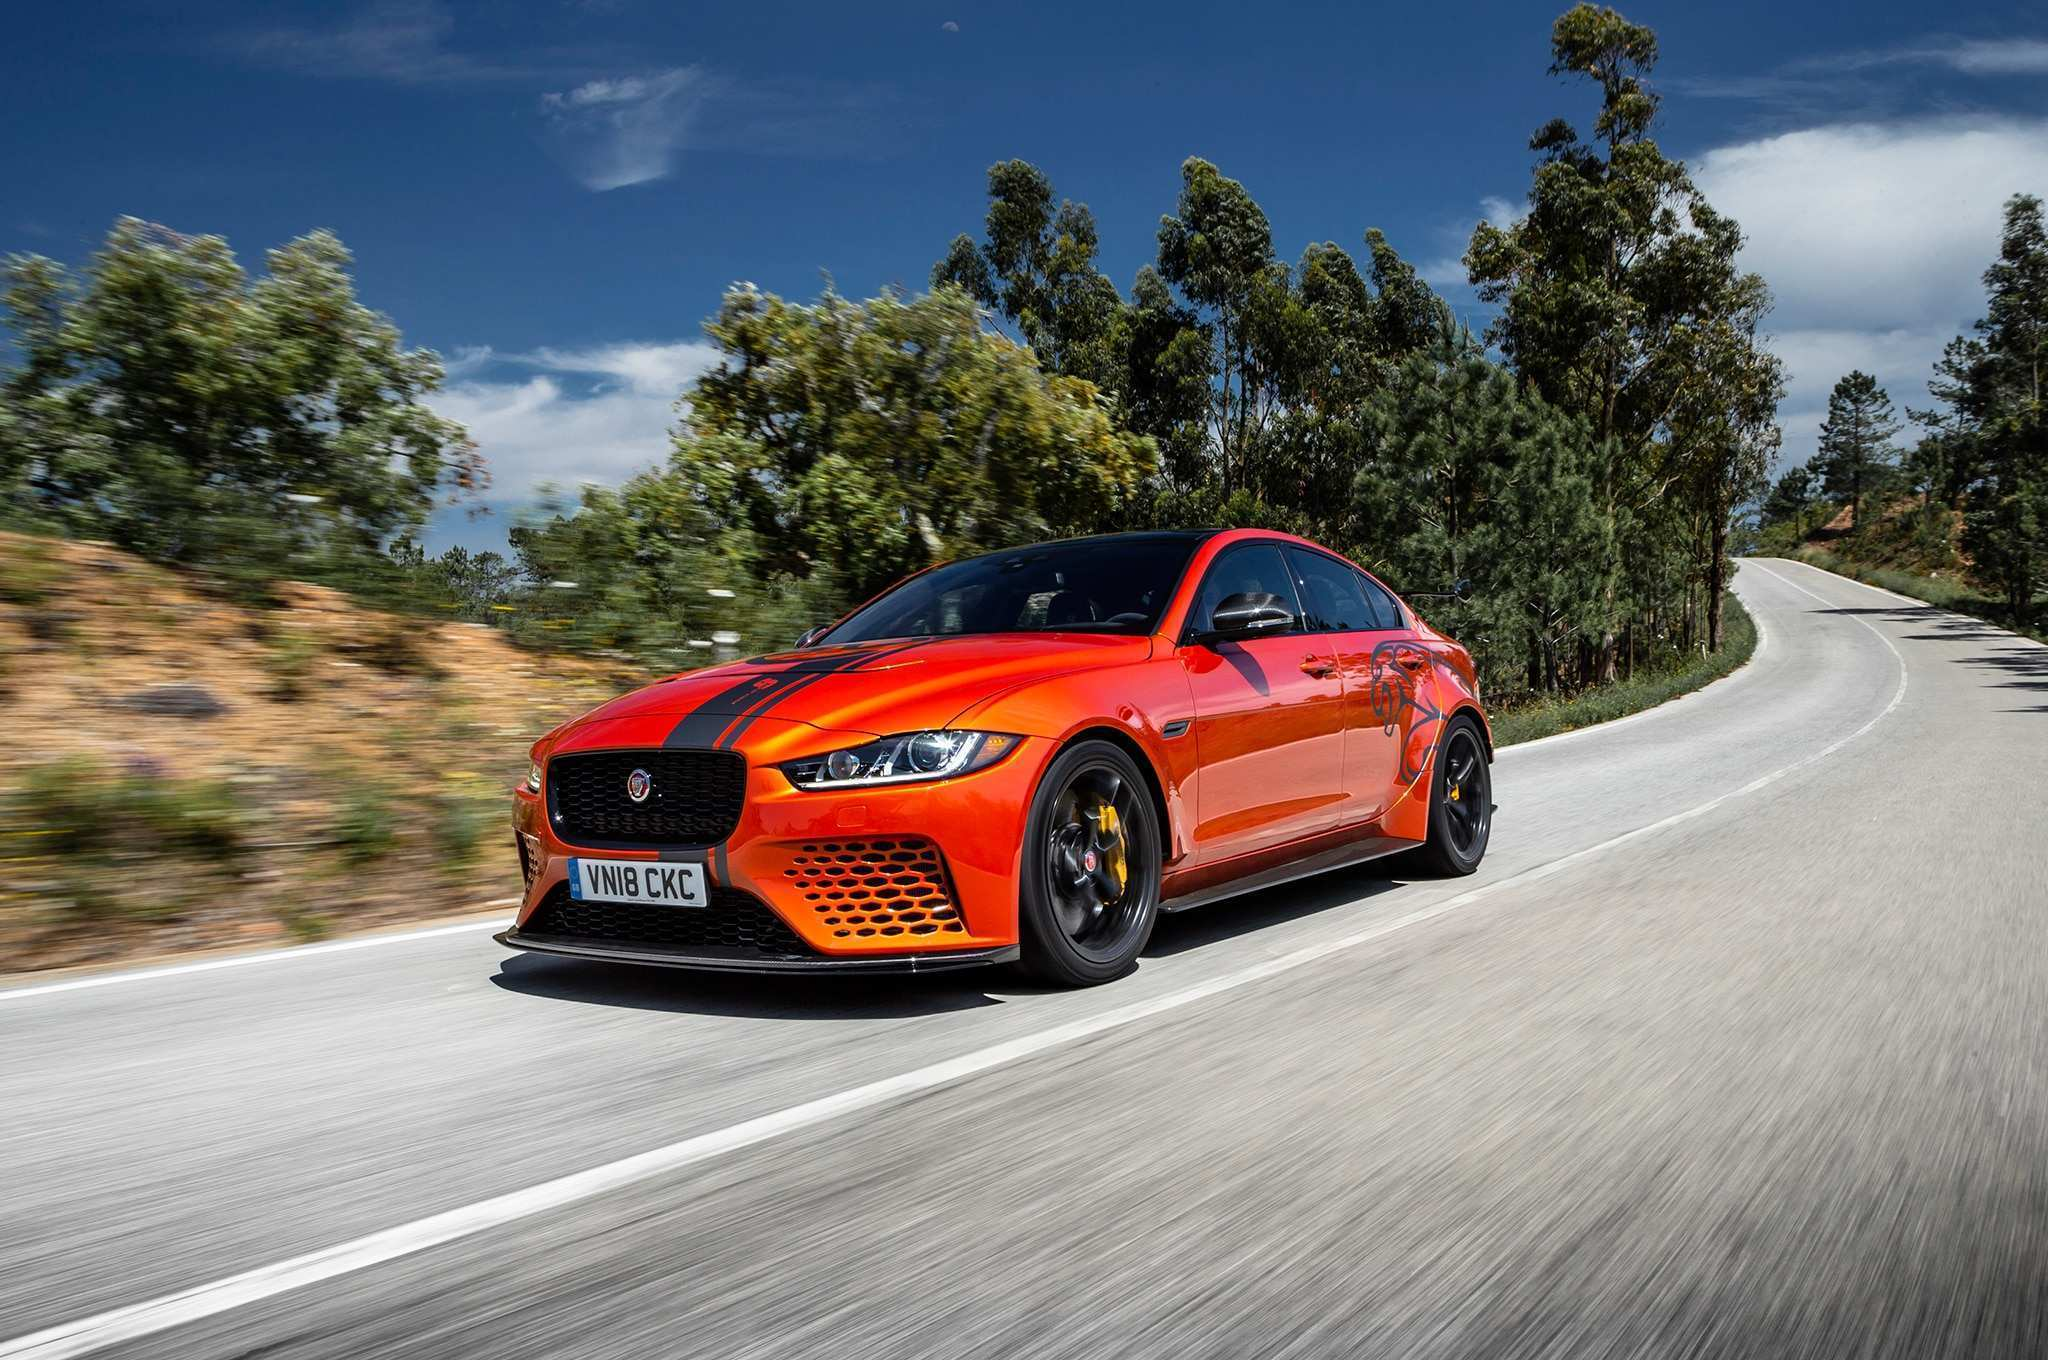 64 A 2019 Jaguar Project 8 Review And Release Date